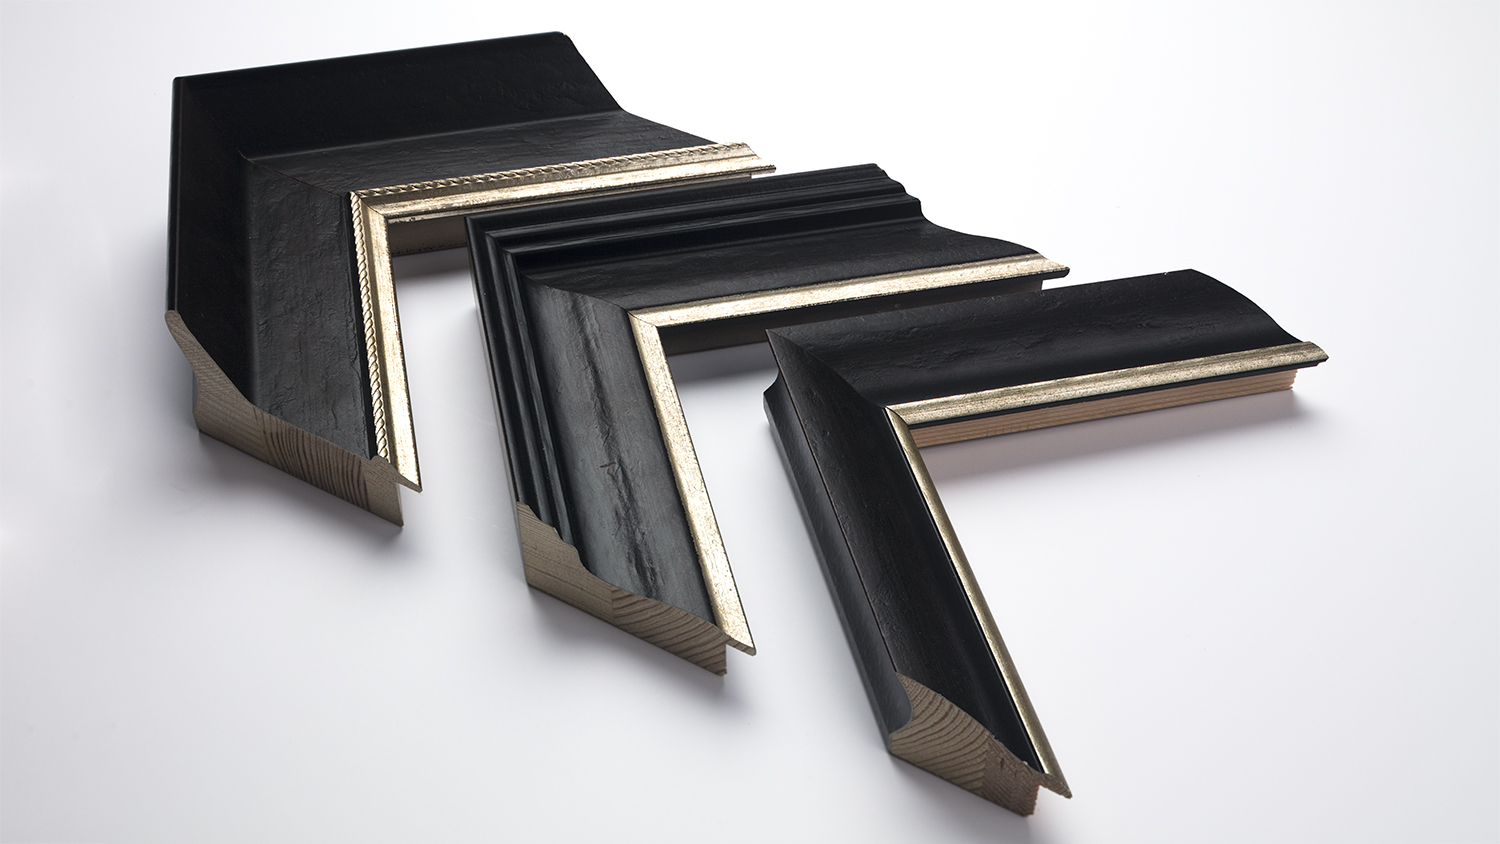 75mm large/60mm medium/40mm sloped with gold trim